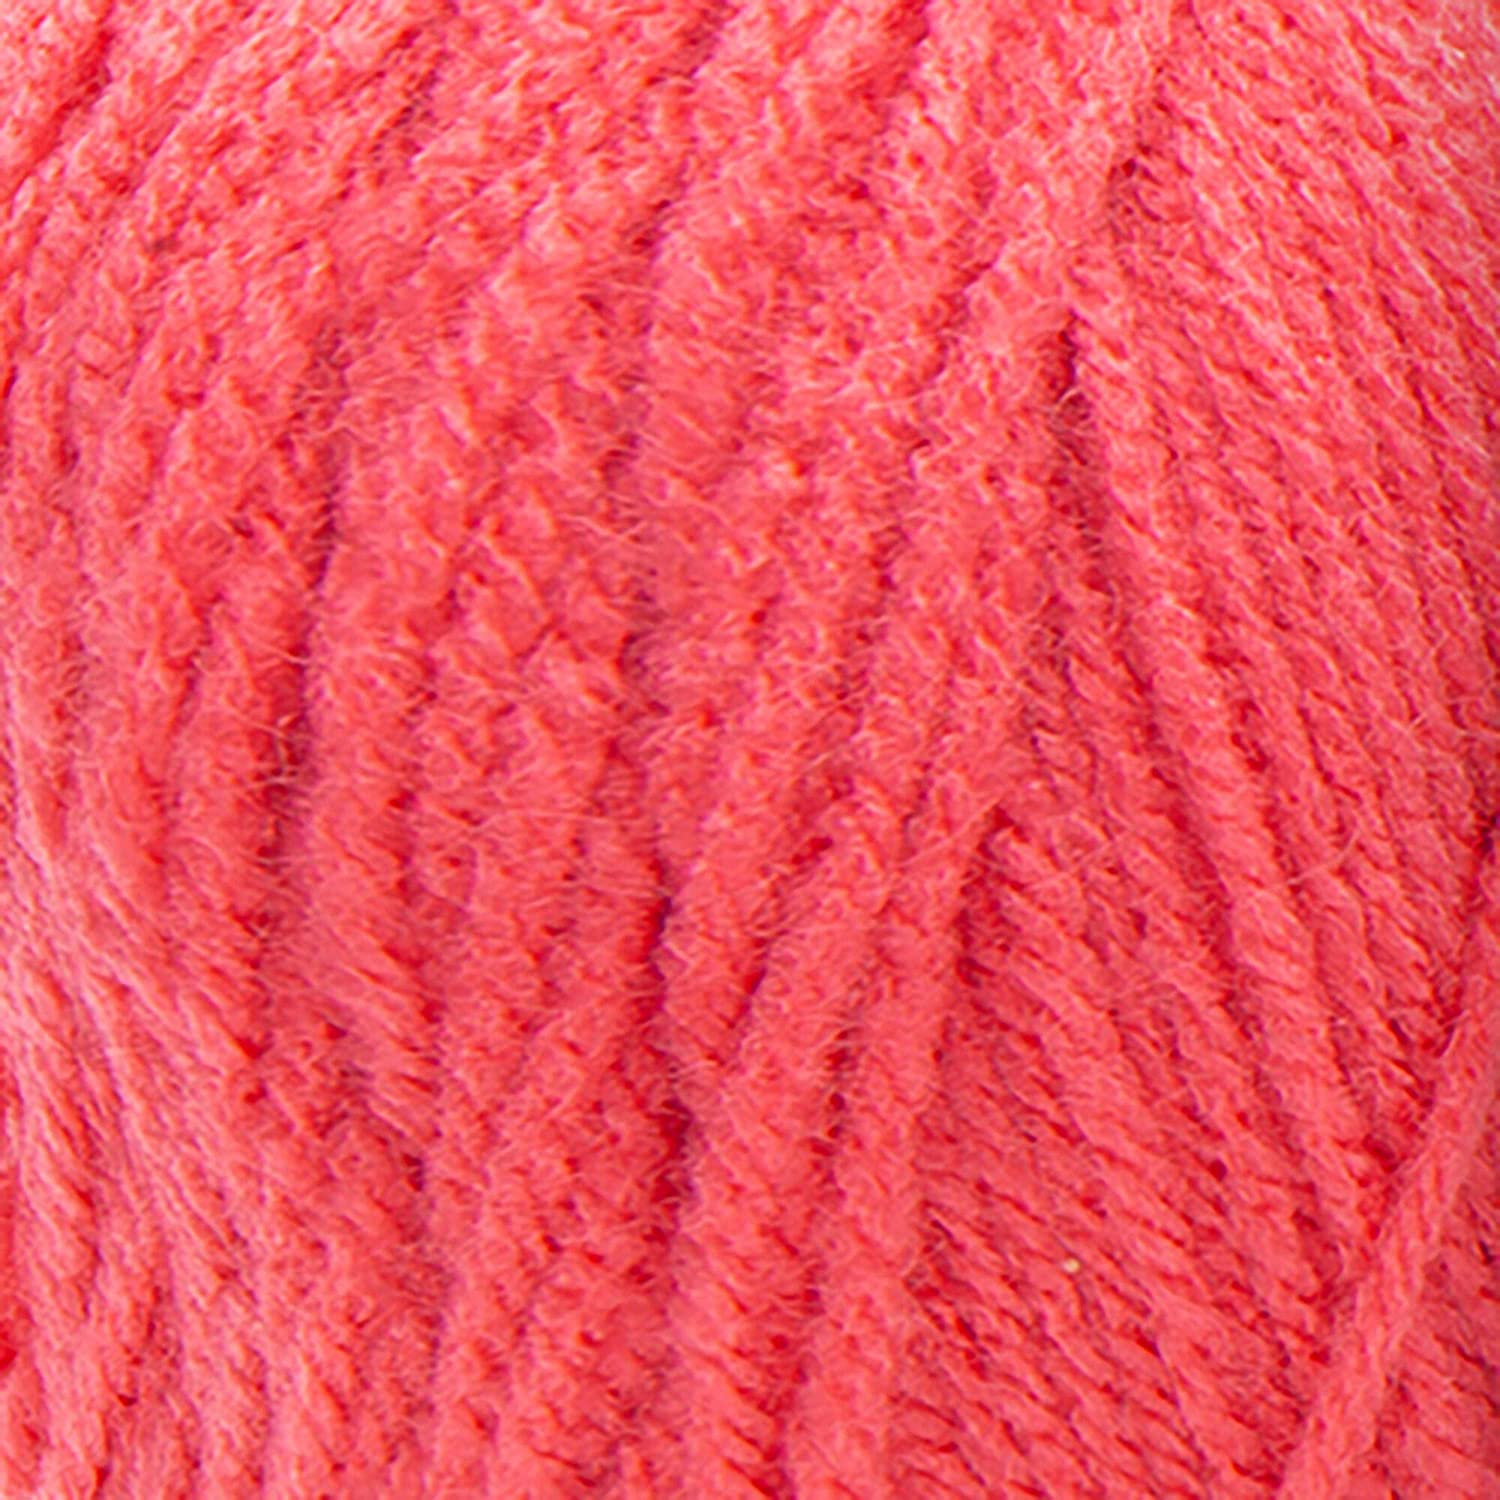 RED HEART Super Saver 3-Pack yarn BABY PINK 3 Pack